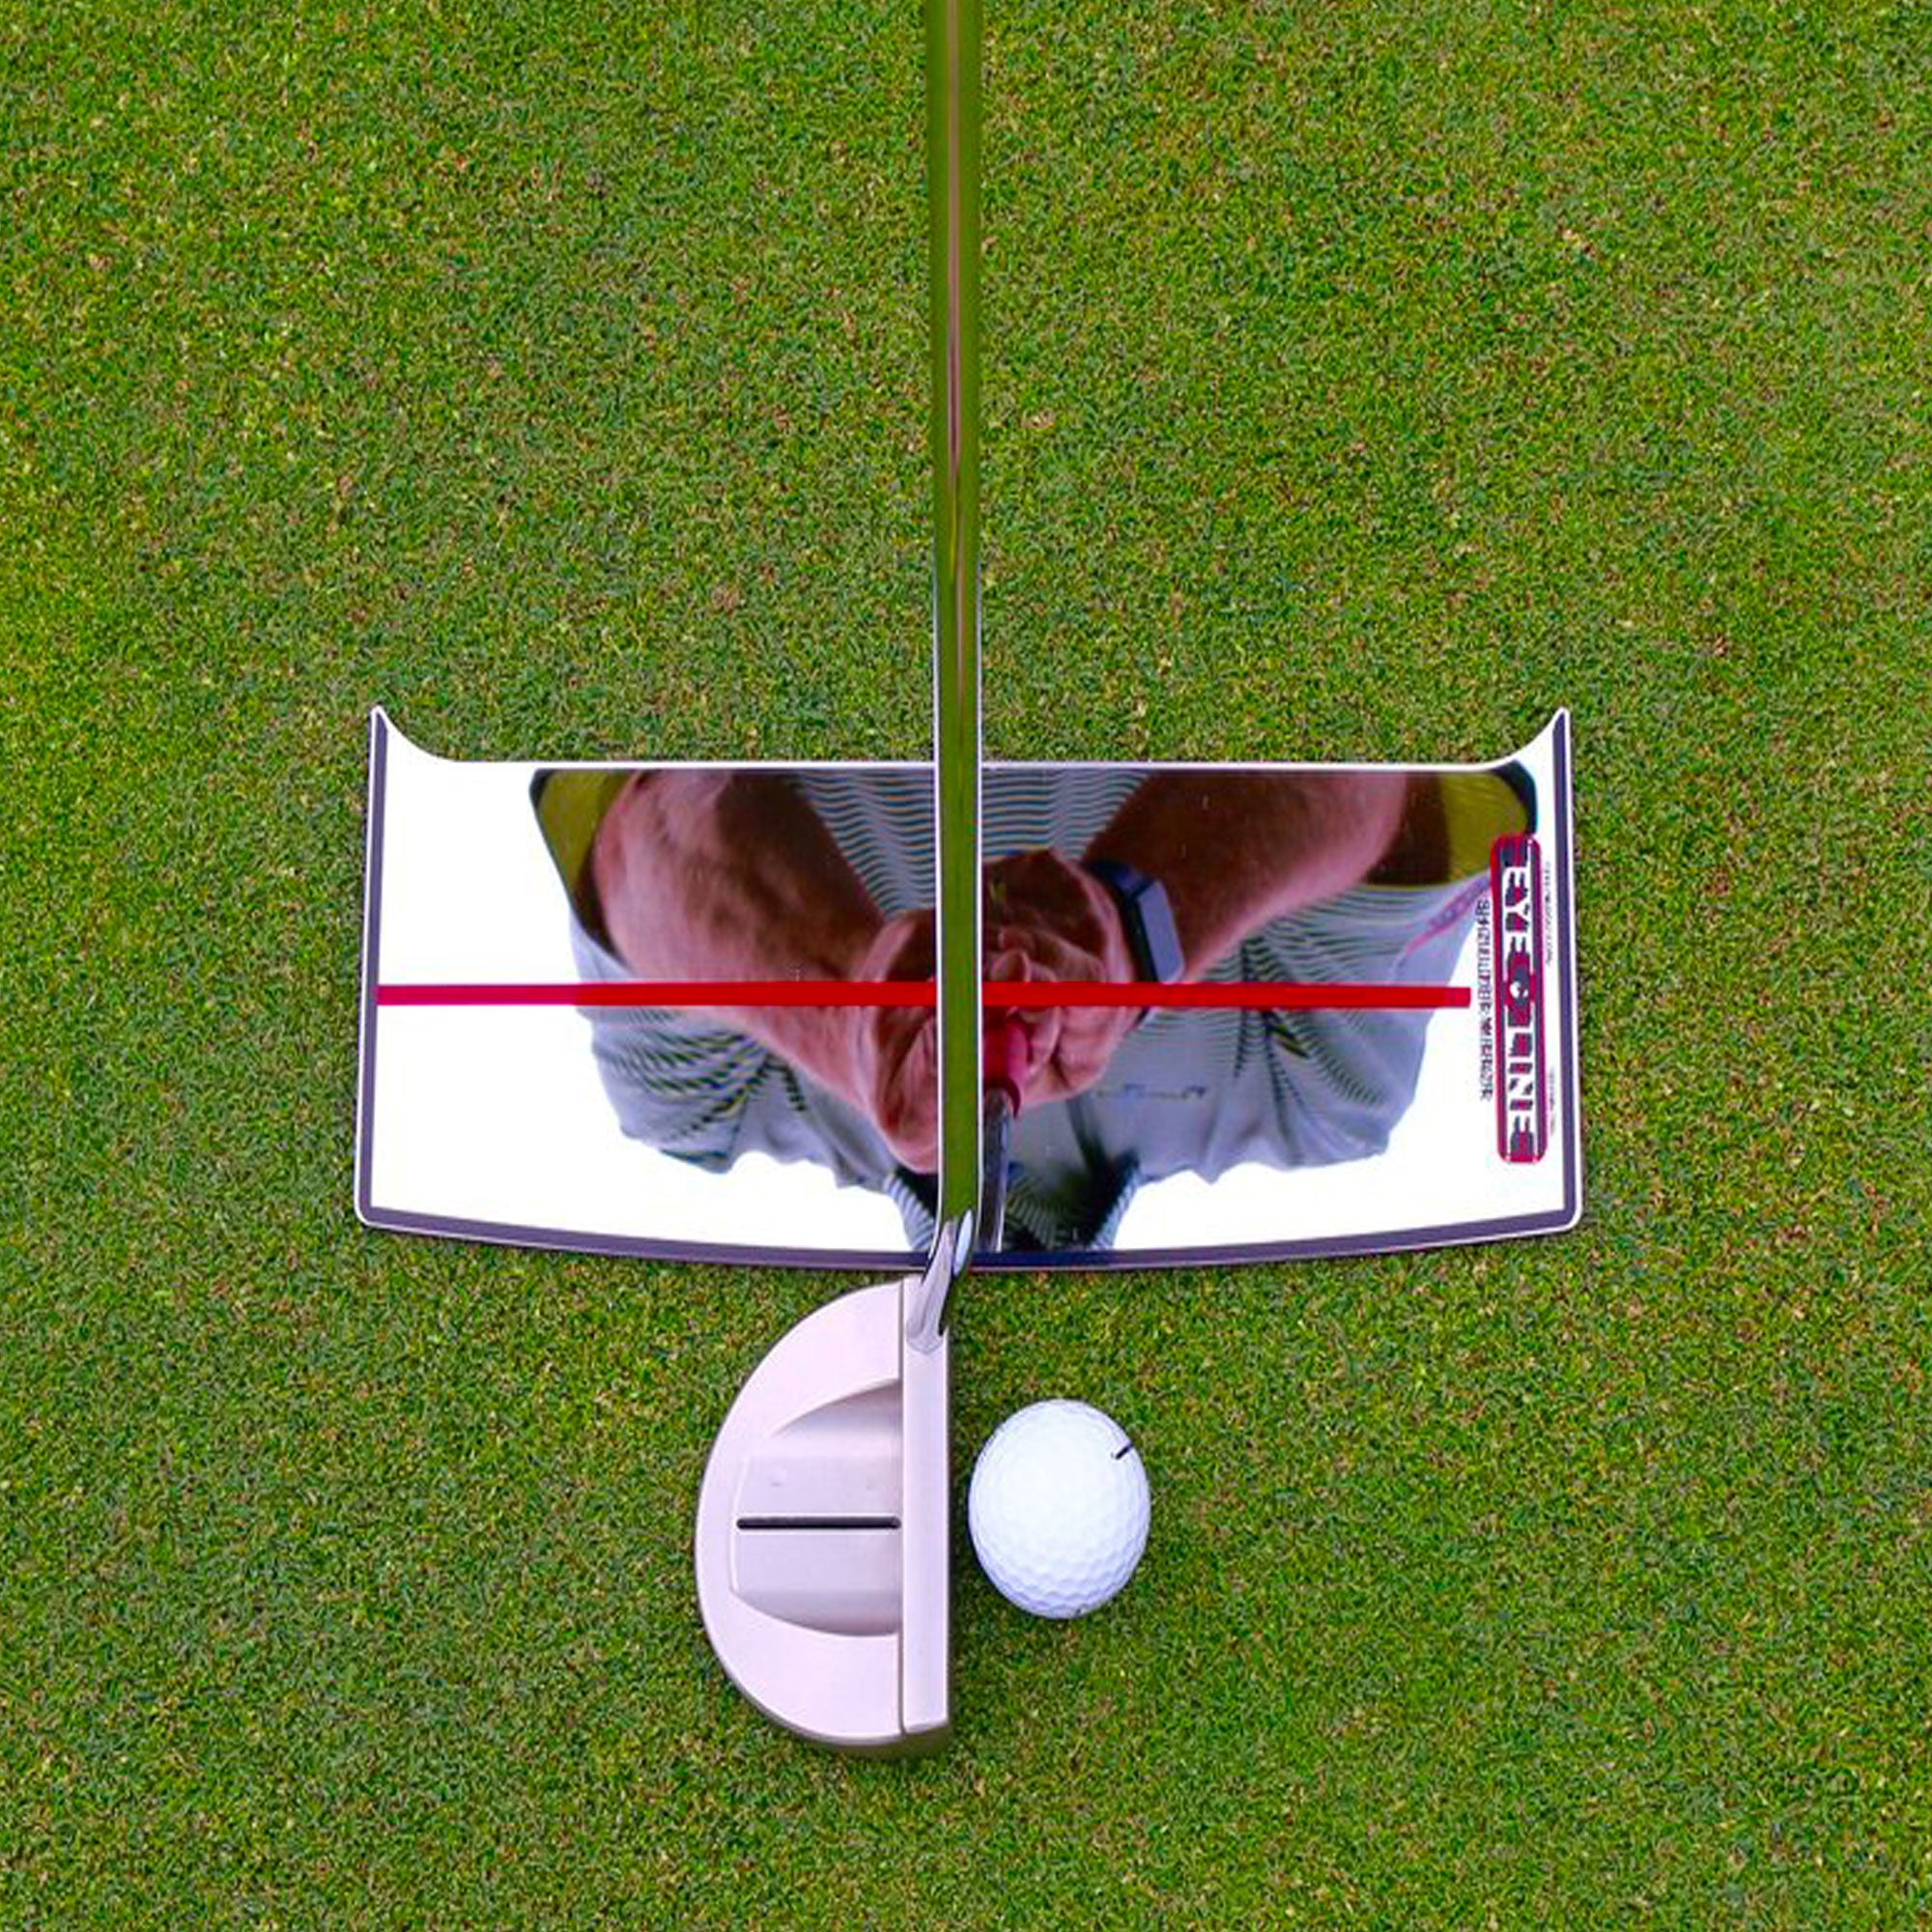 Eyeline Golf - Shoulder Mirror - Event Stuff Ltd Owns Putterfingers.com!